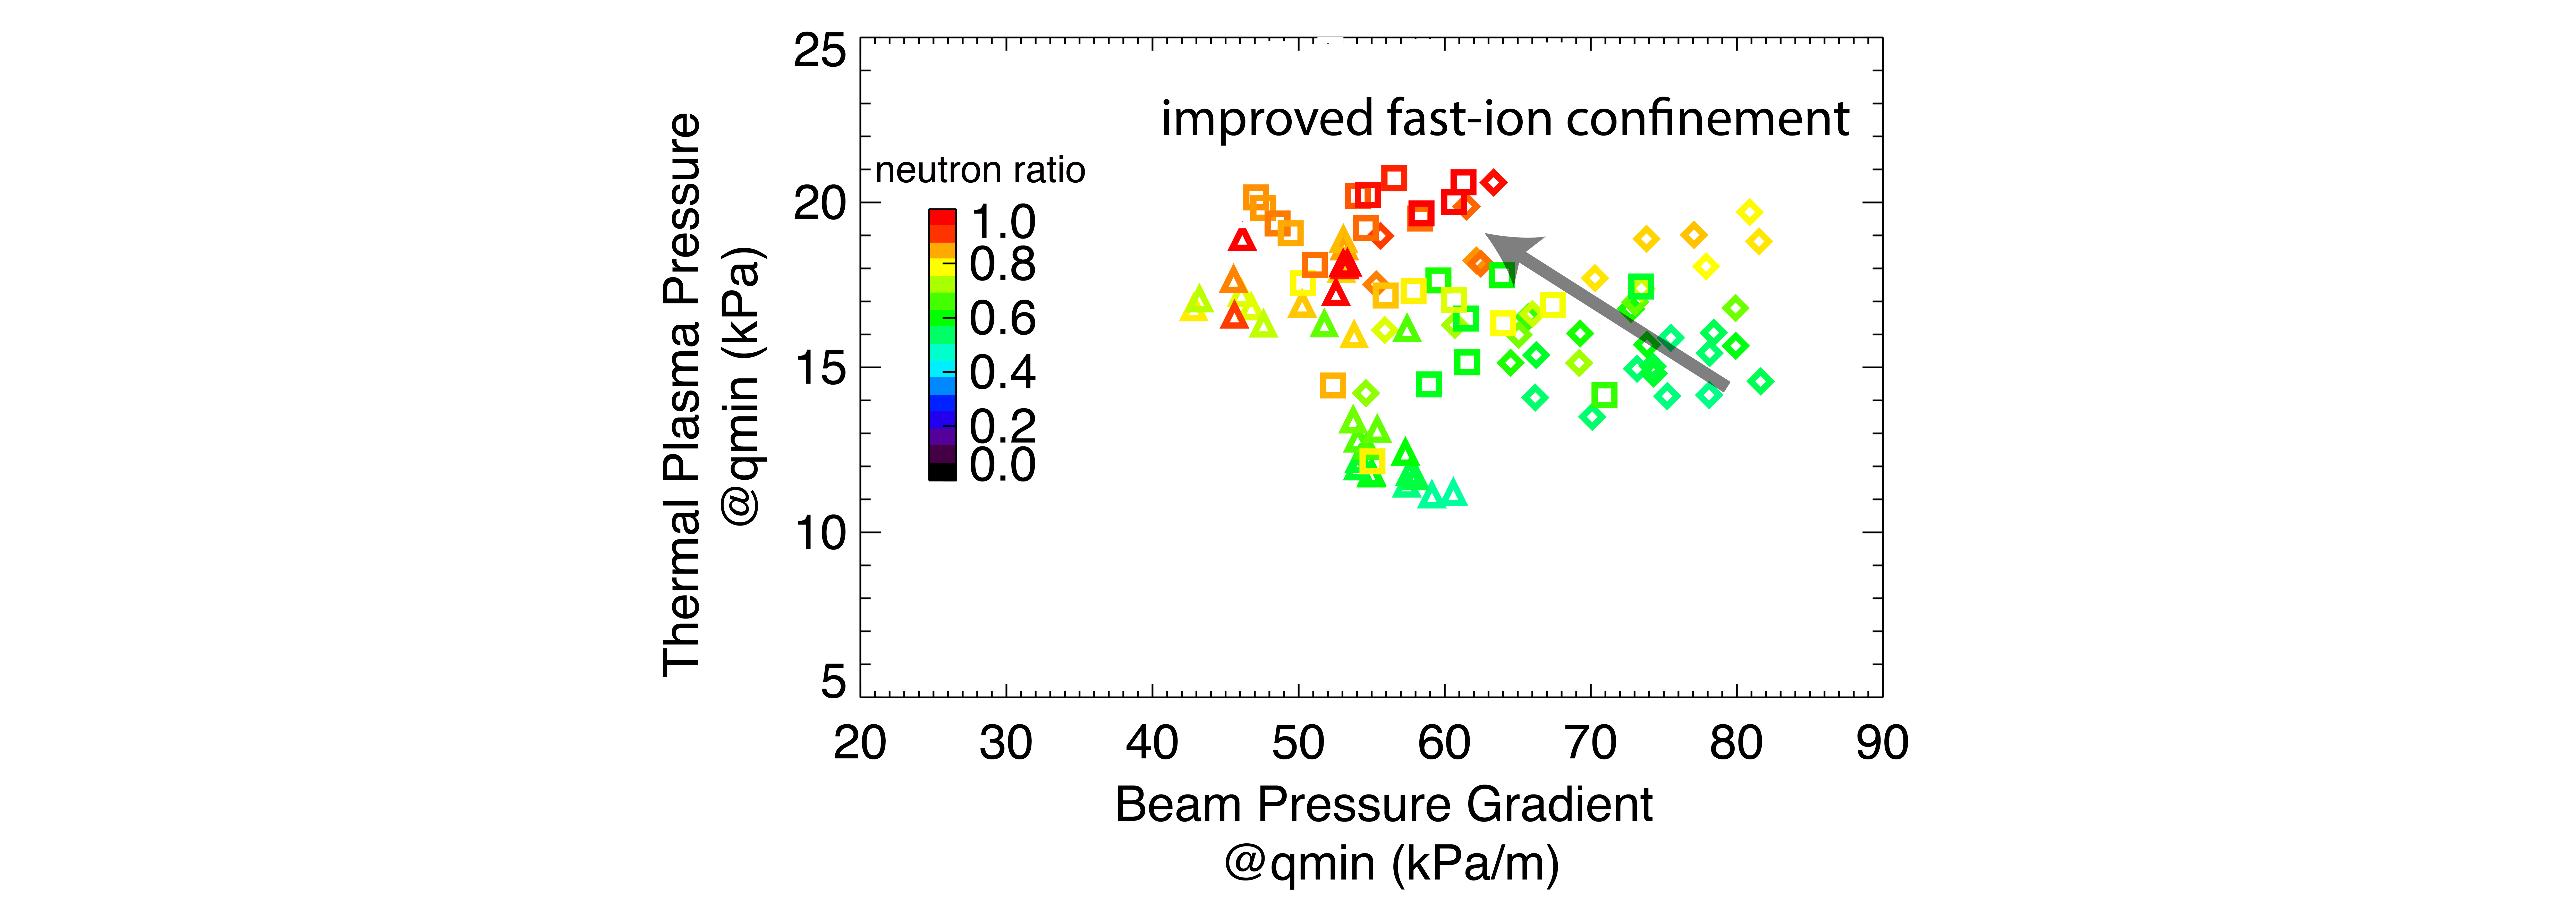 Neutron ratio from Fig. [1] shows improvement (green to red) when $\rho_{qmin}$  was located at lower beam pressure gradient (reduces RSAE drive) and increased pressure (increases RSAE damping).